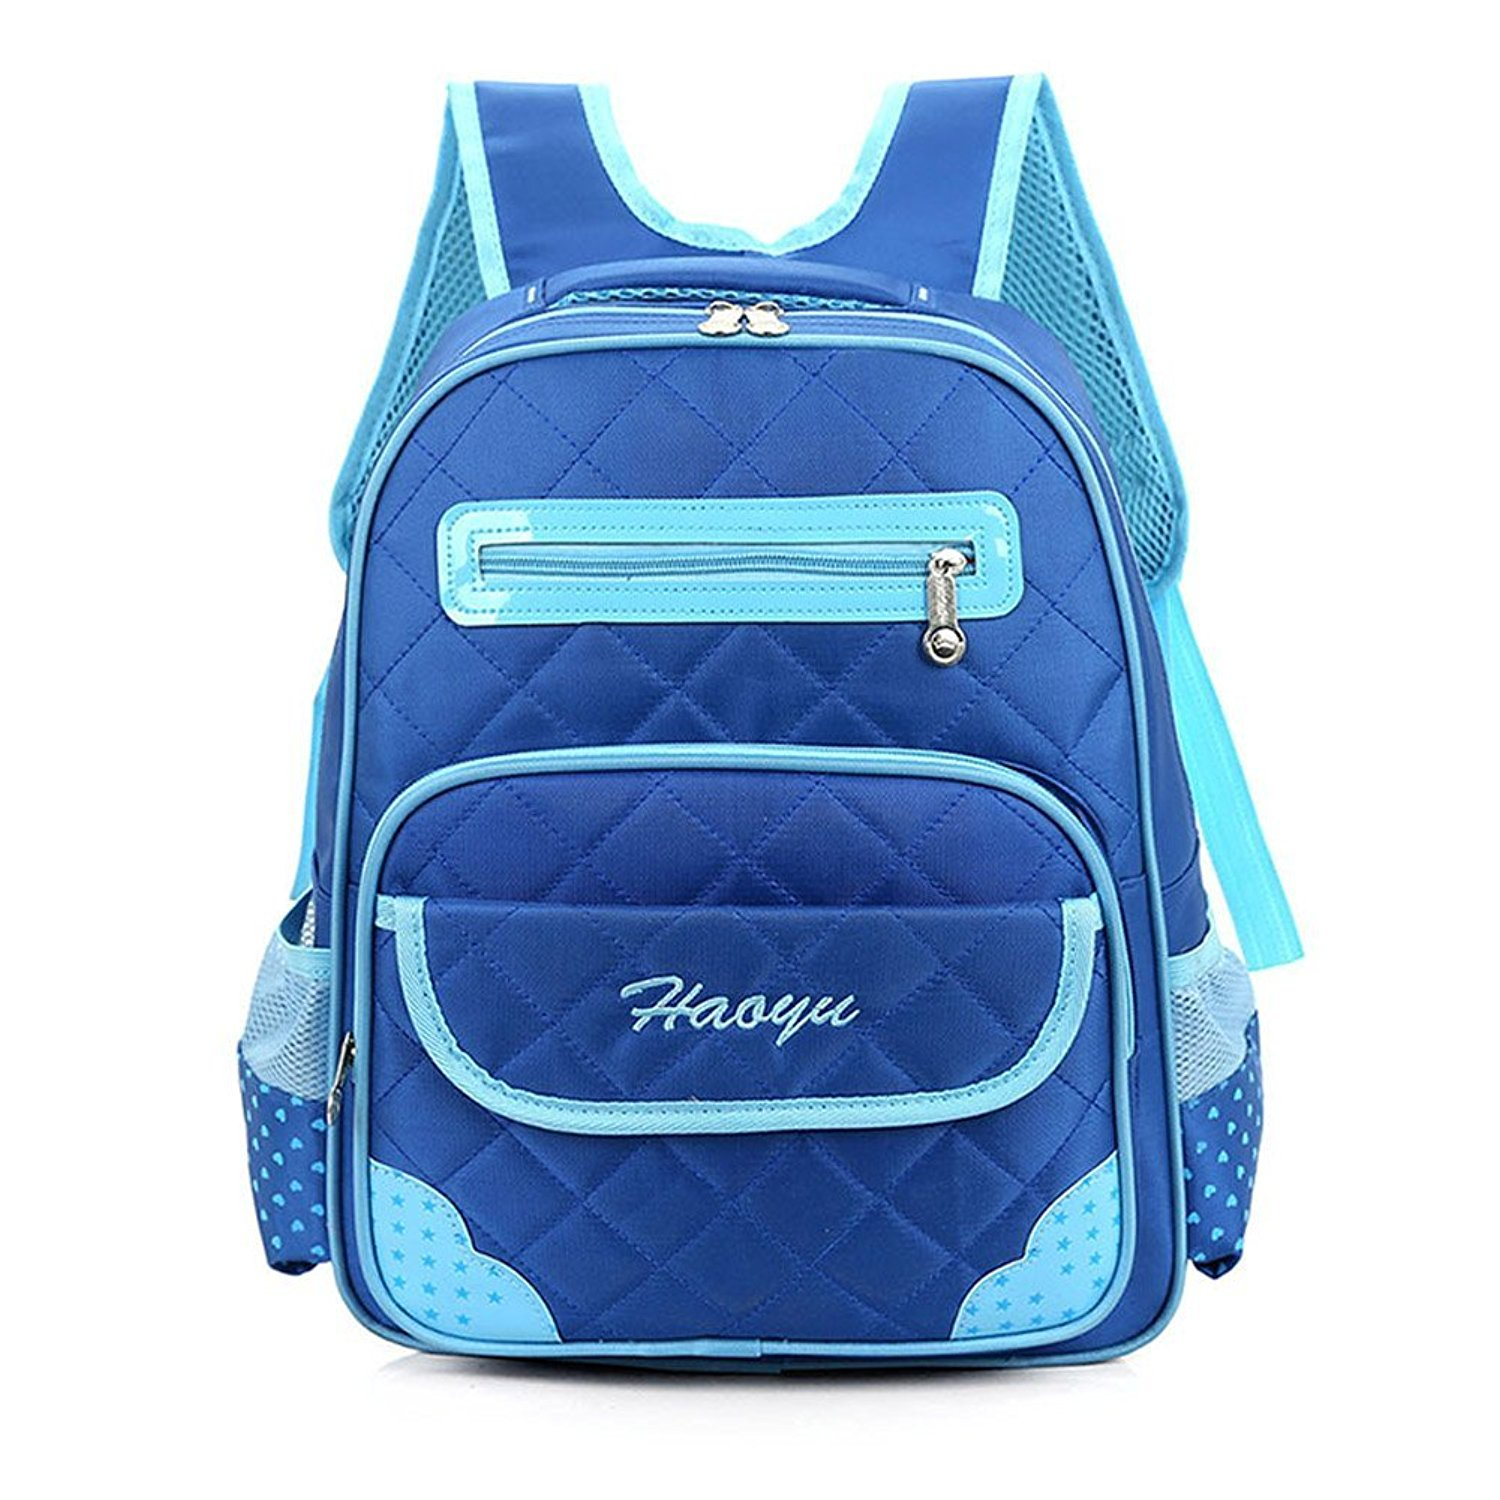 c49c67c39038 Buy Dsinlare Boys Backpack Bookbags Cool Elementary School Kids Book ...